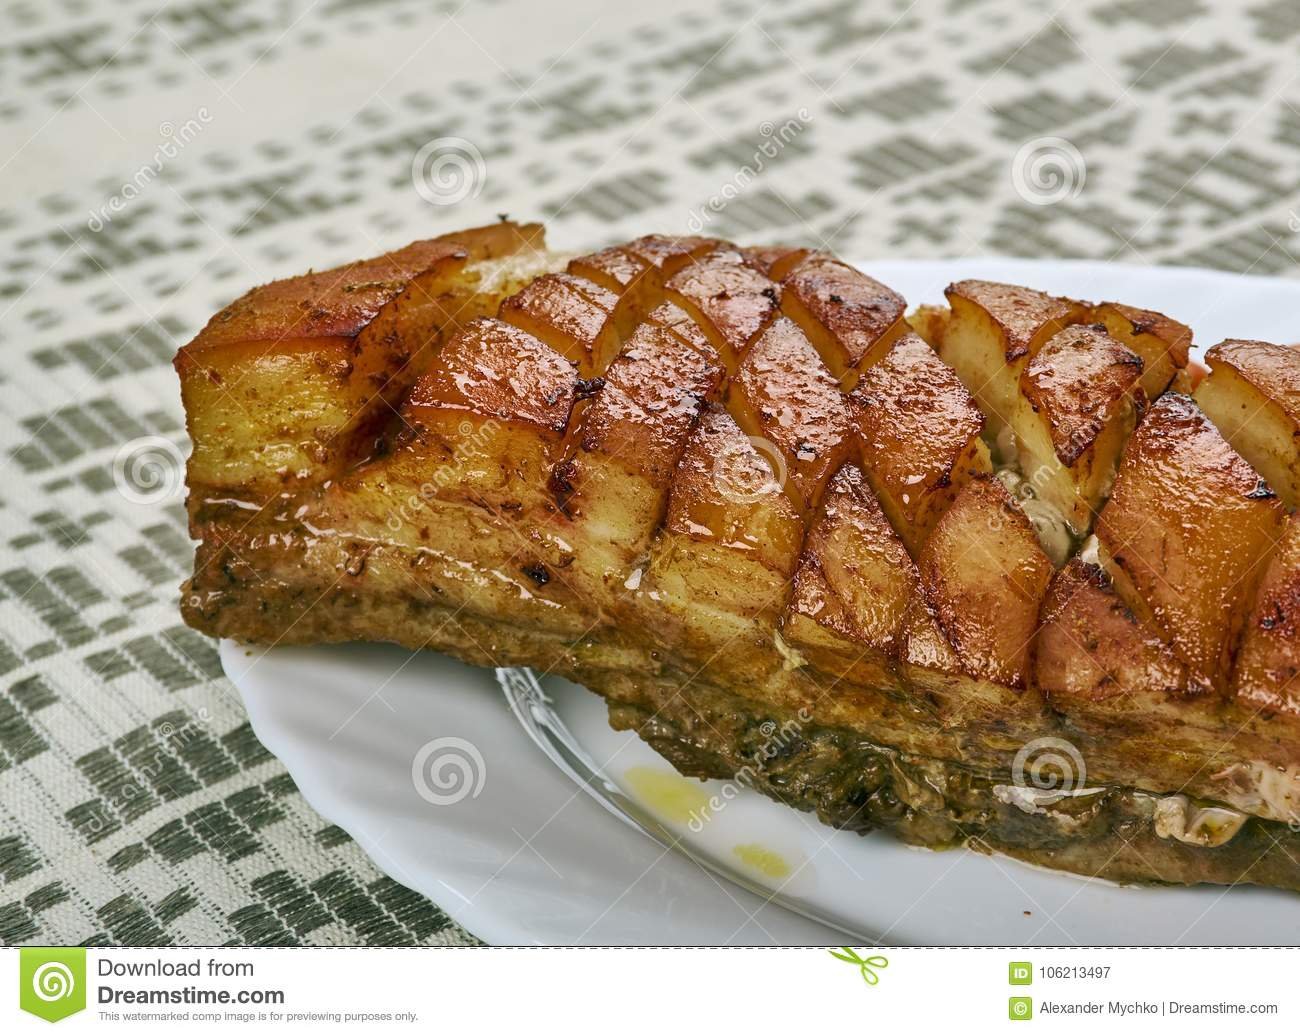 Norwegian Ribbe stock image. Image of ribbe, grill, meat - 106213497